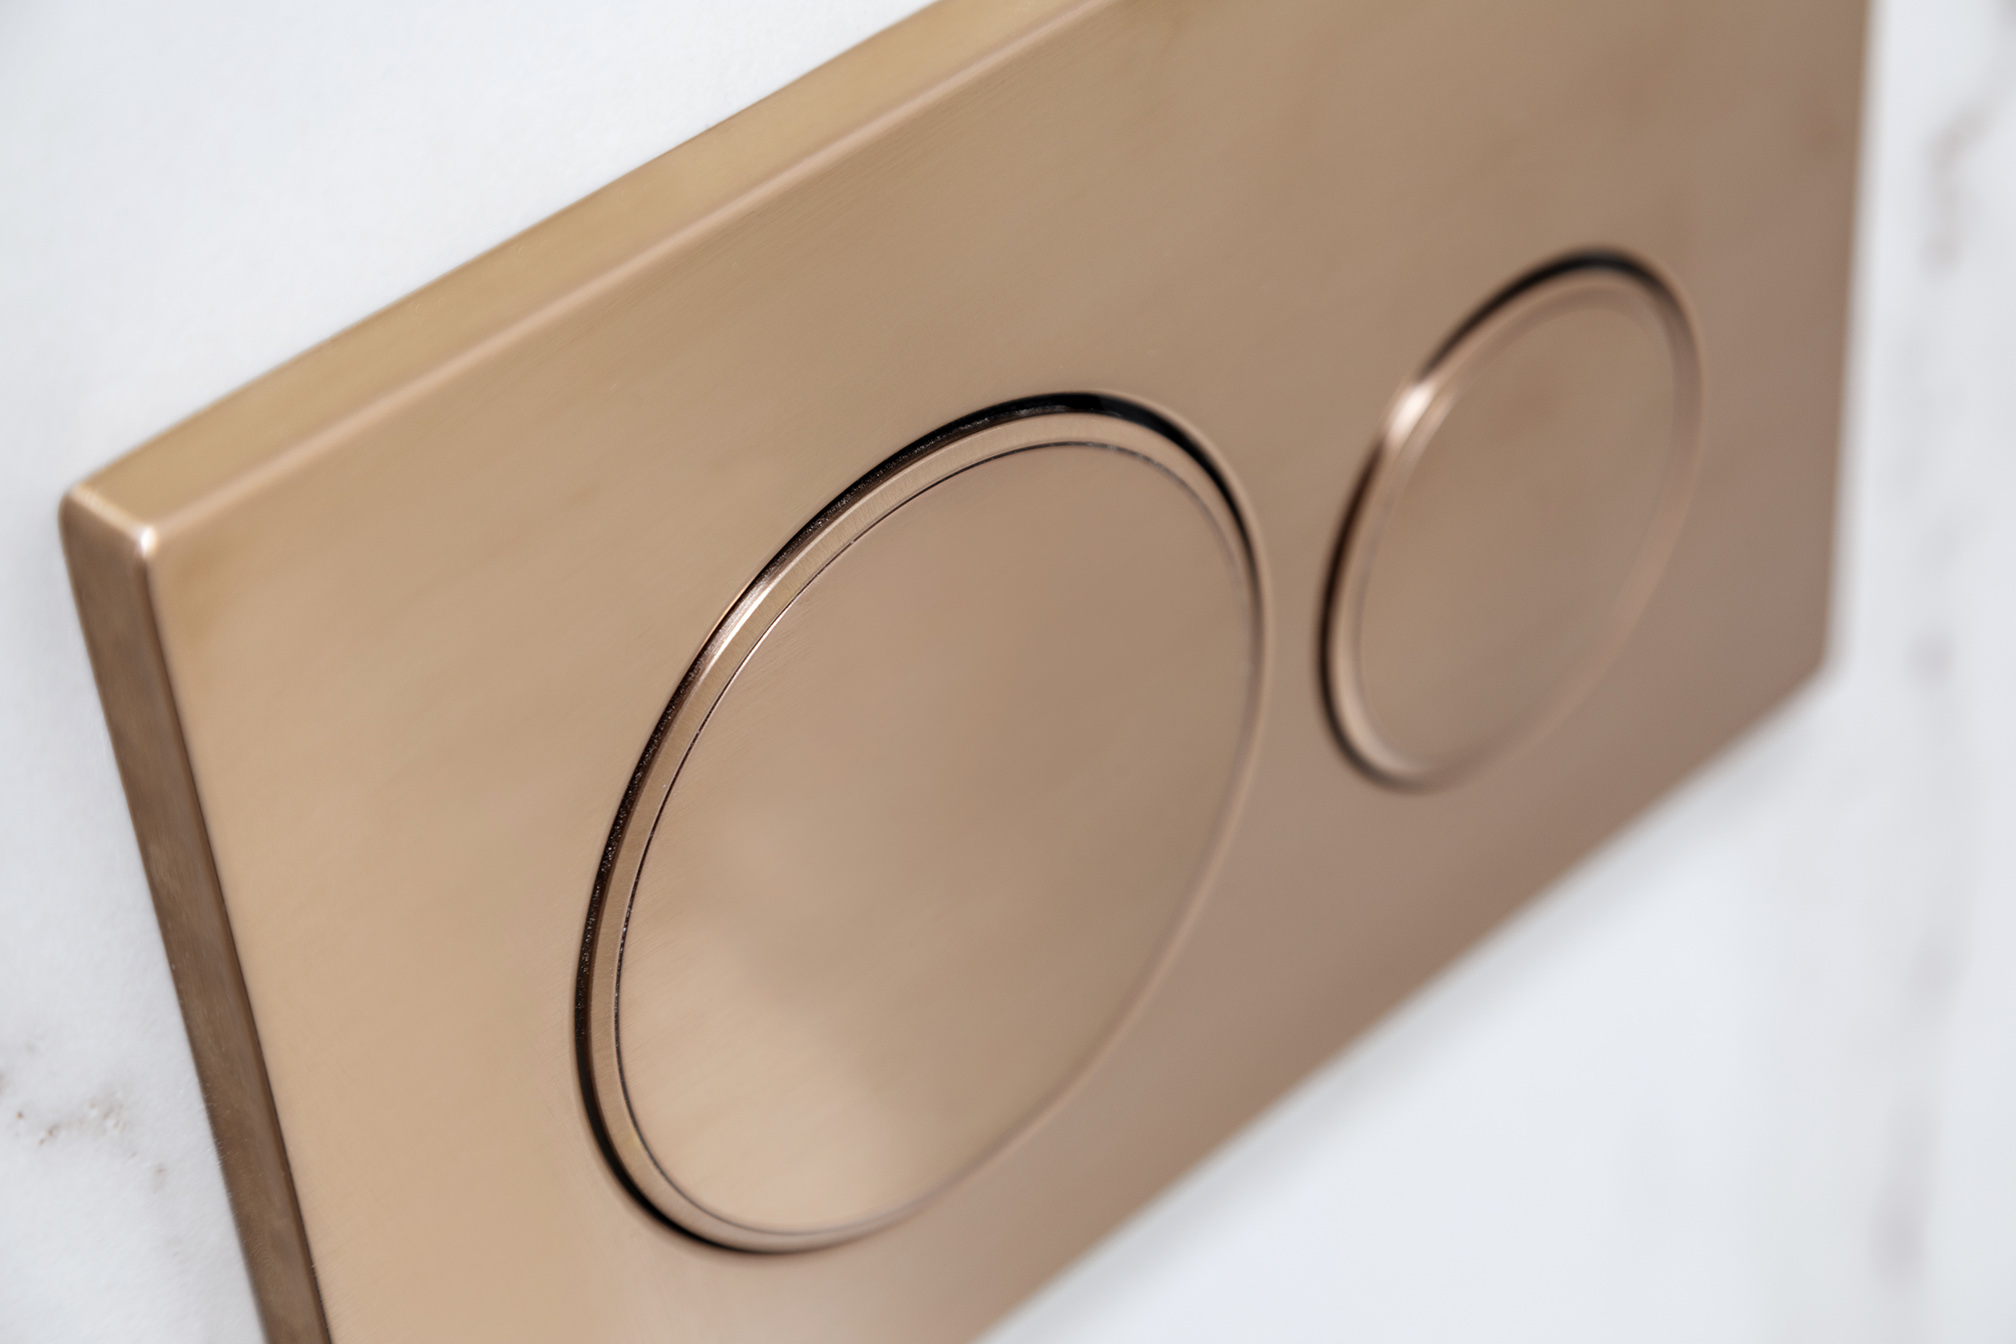 Mount Lawley Traditional Skylit Ensuite - Brass toilet flush buttons